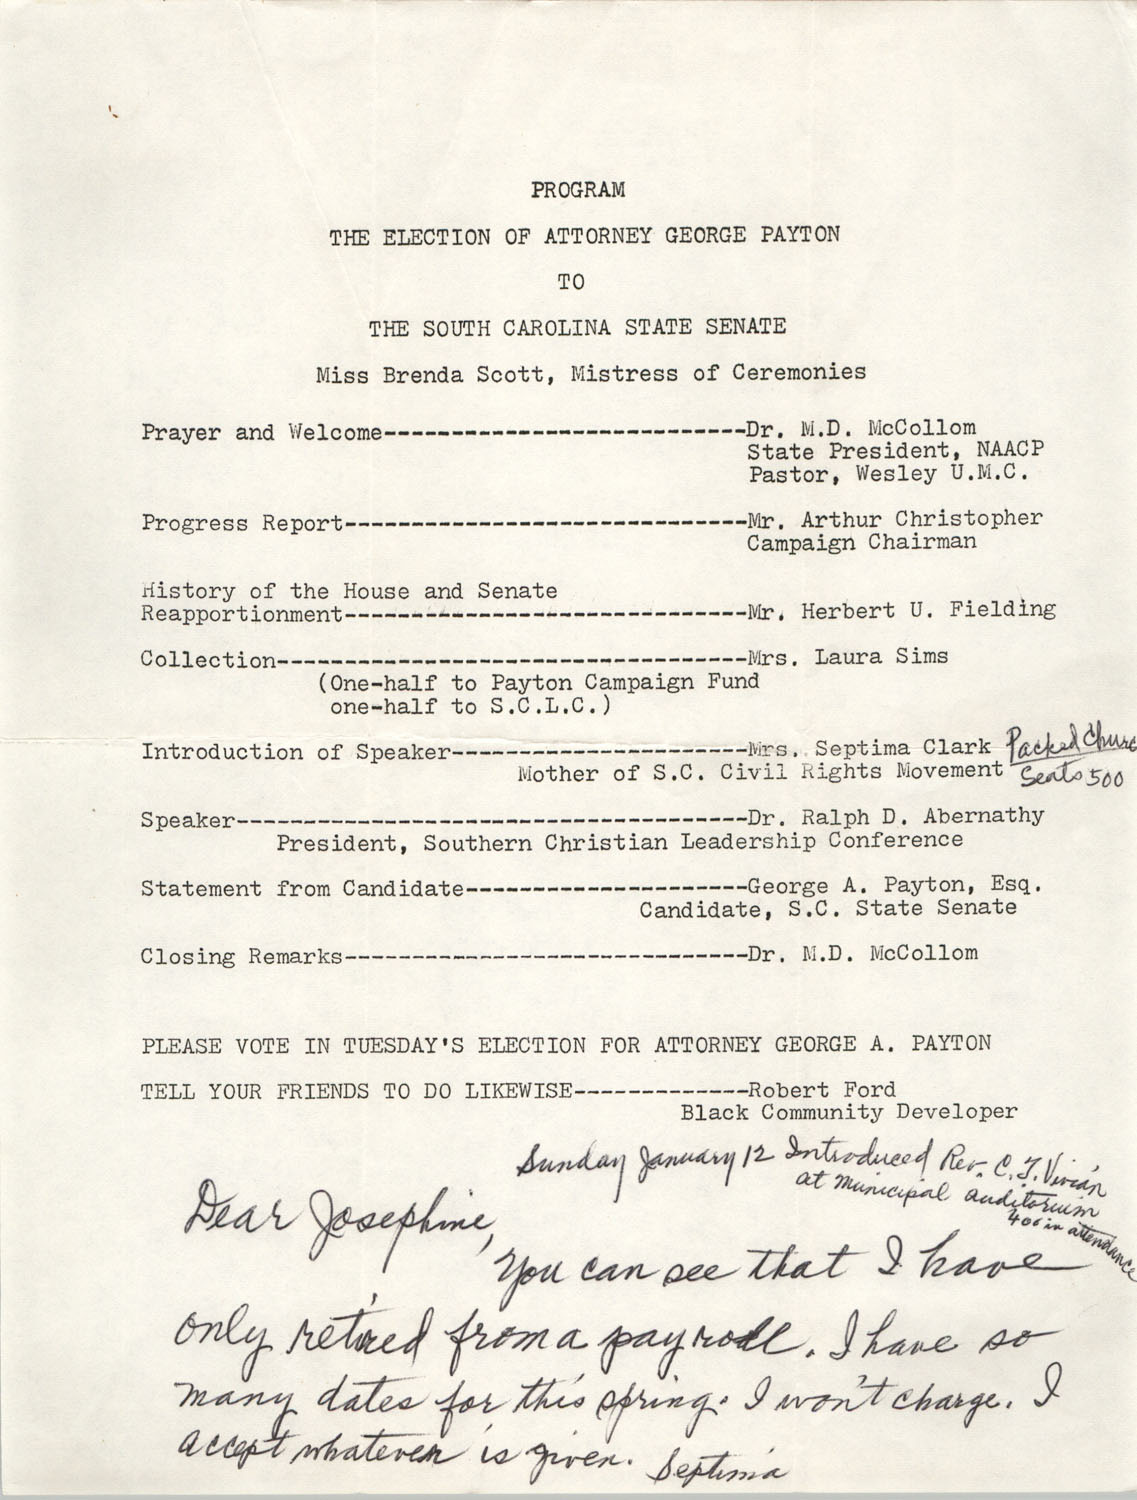 Program for the Election of Attorney George Payton to The South Carolina State Senate